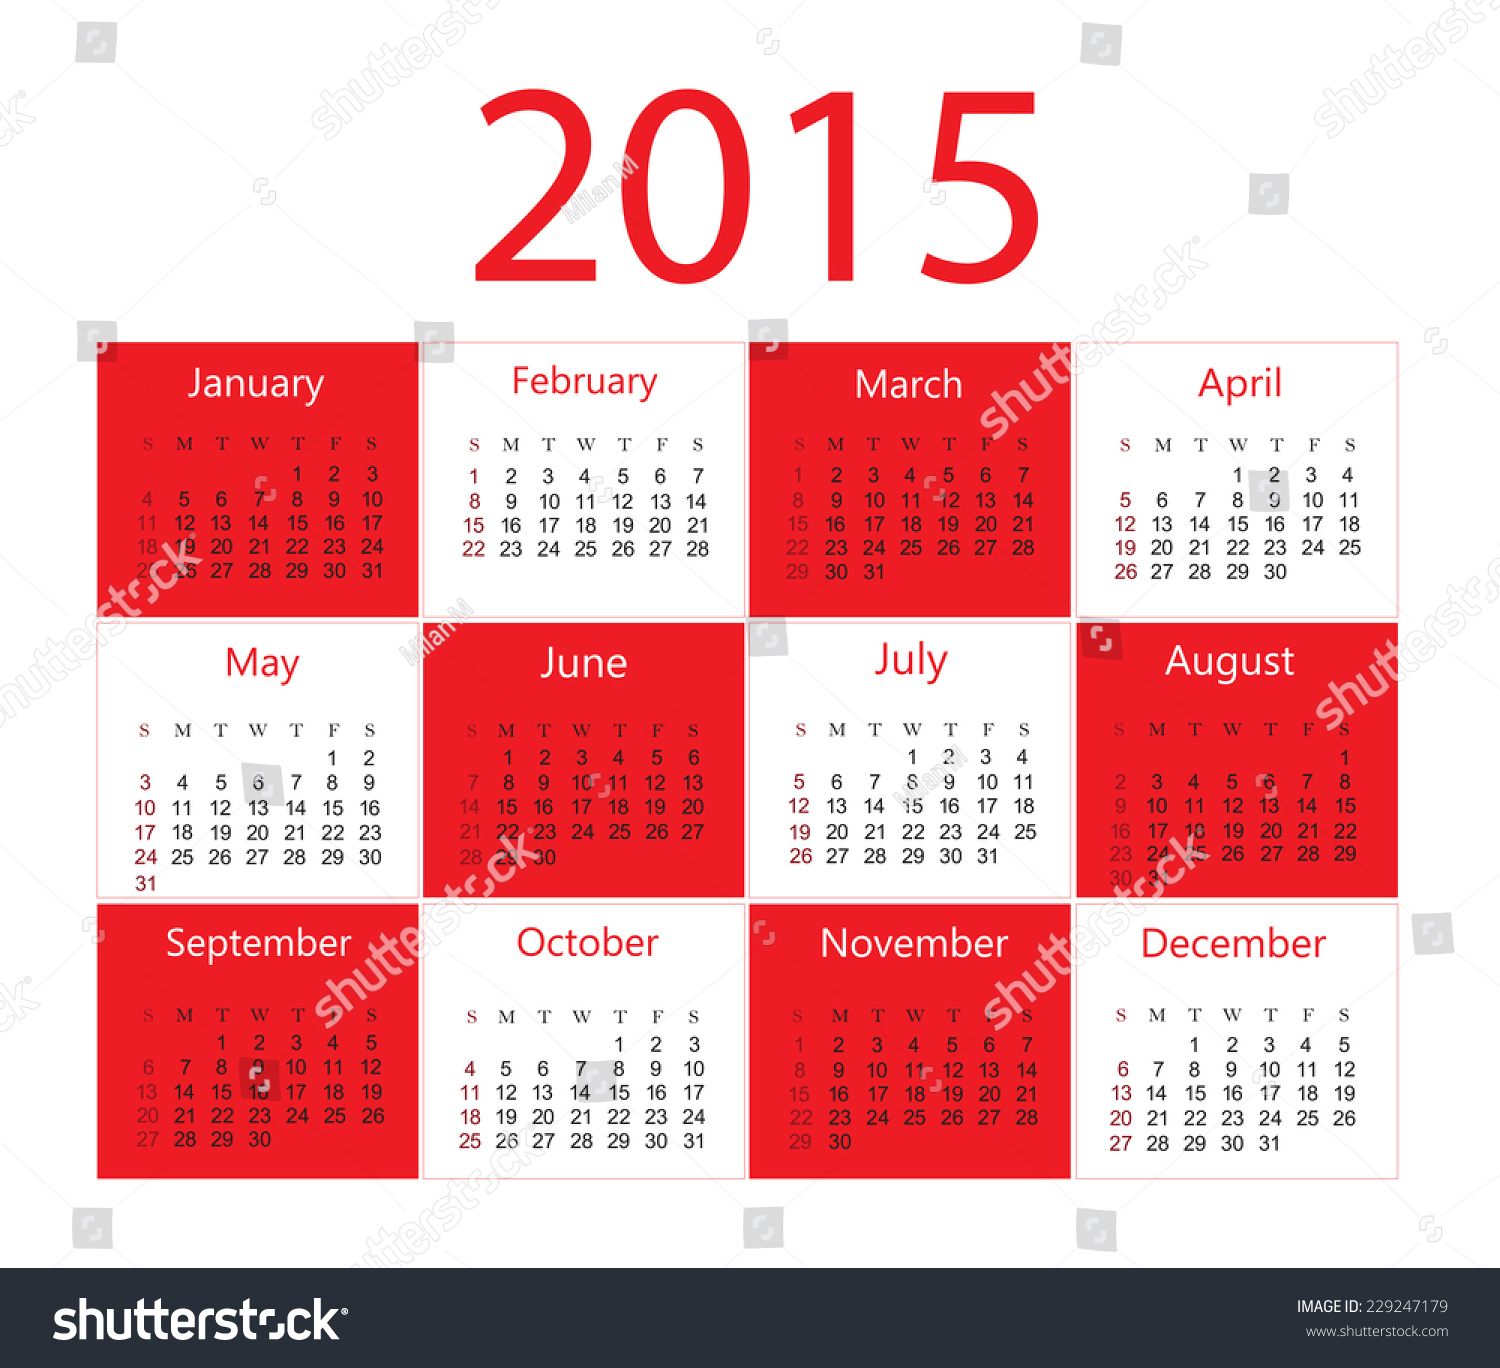 Calendar Red : Calendar red and white vector template